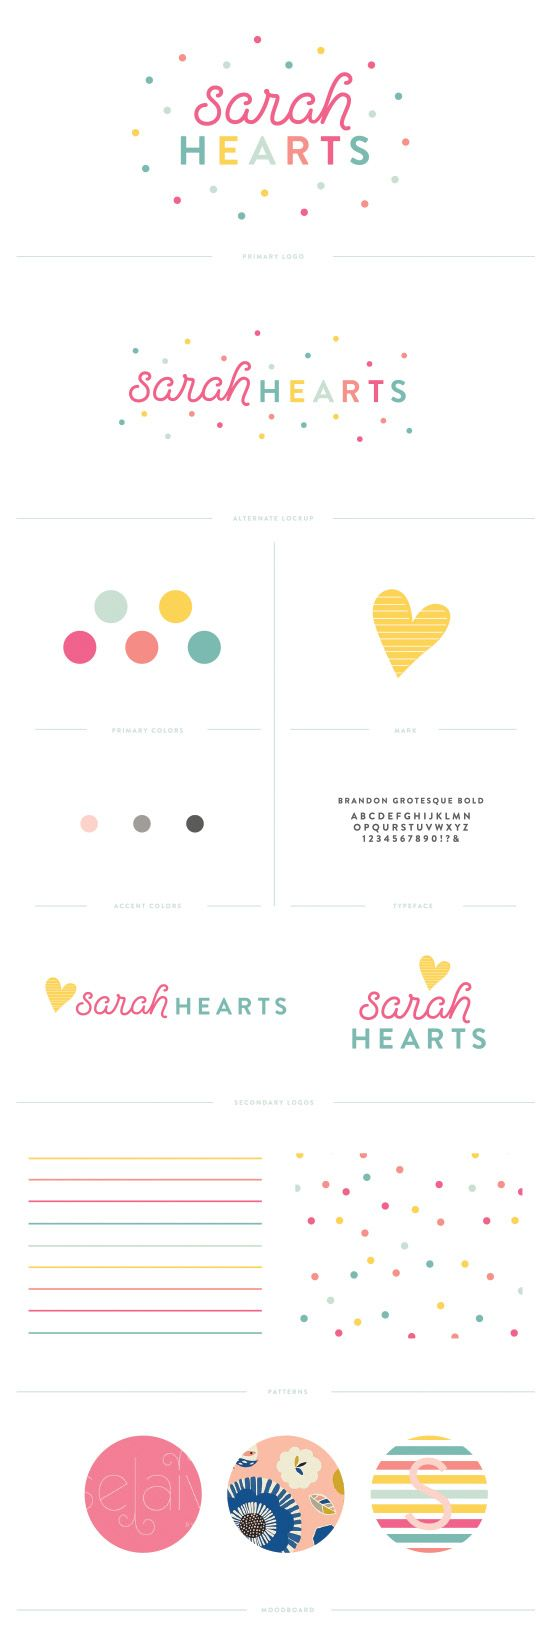 Sarah Hearts branding by Pinegate Road